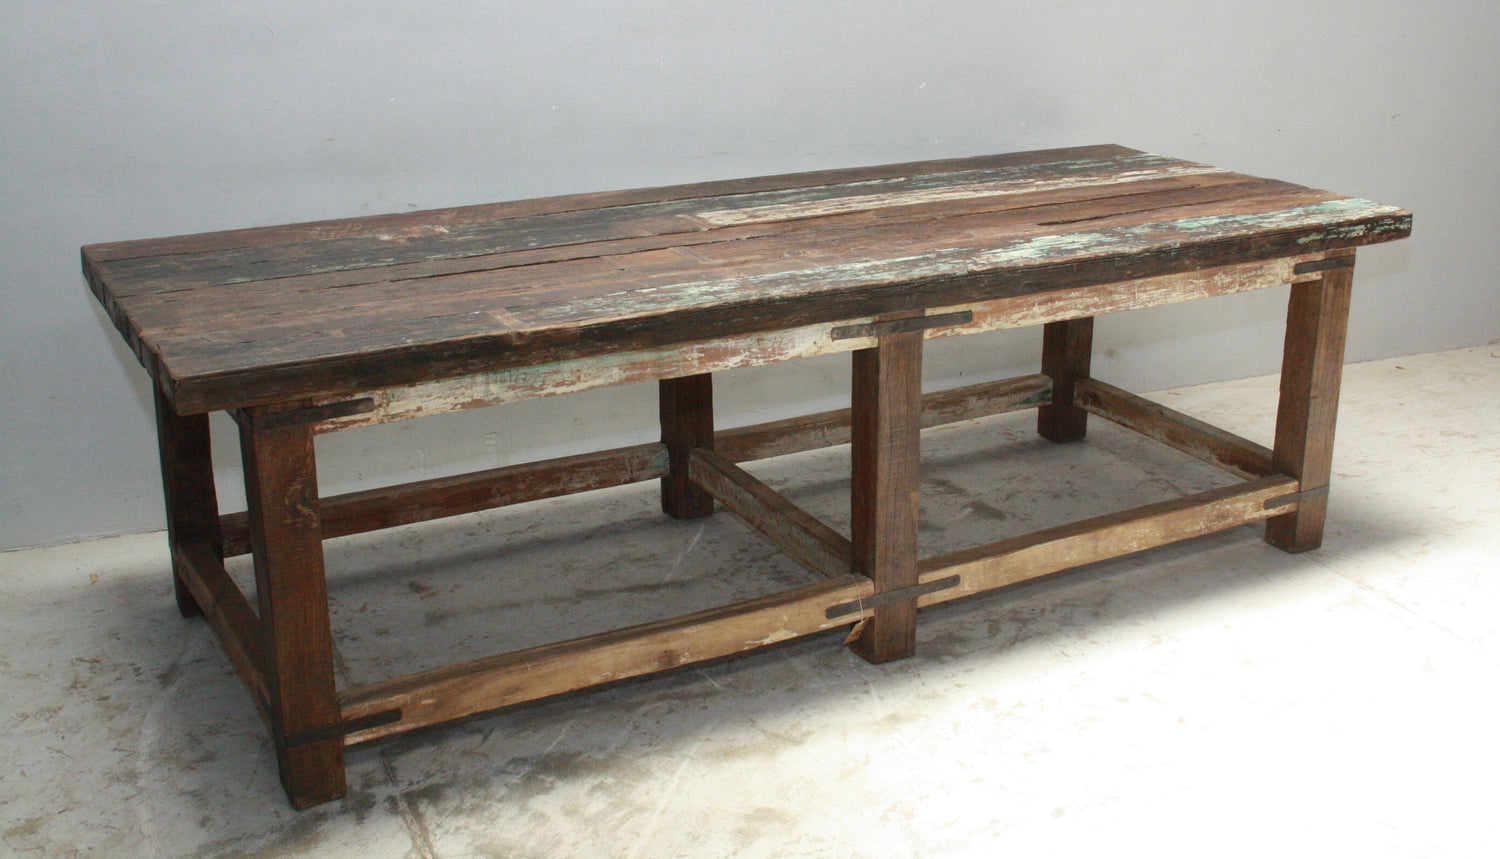 VINTAGE INDIAN WORKERS BENCH